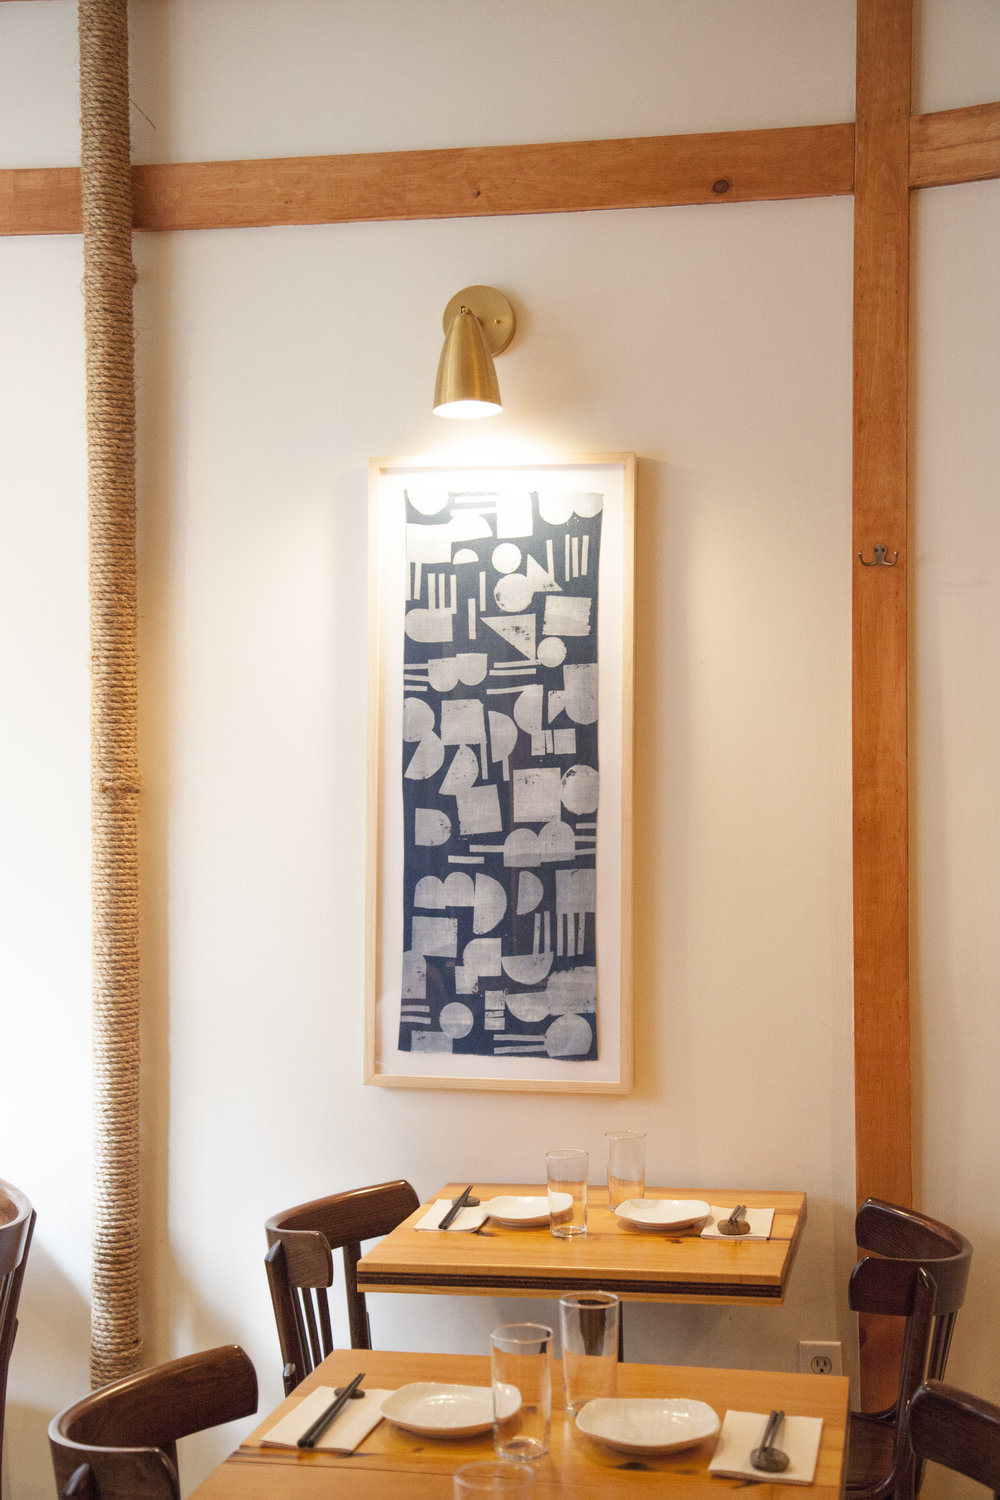 Framed indigo-dyed bandanas are from  Buaisou , a textile company founded by two Japanese indigo farmers and dyers.